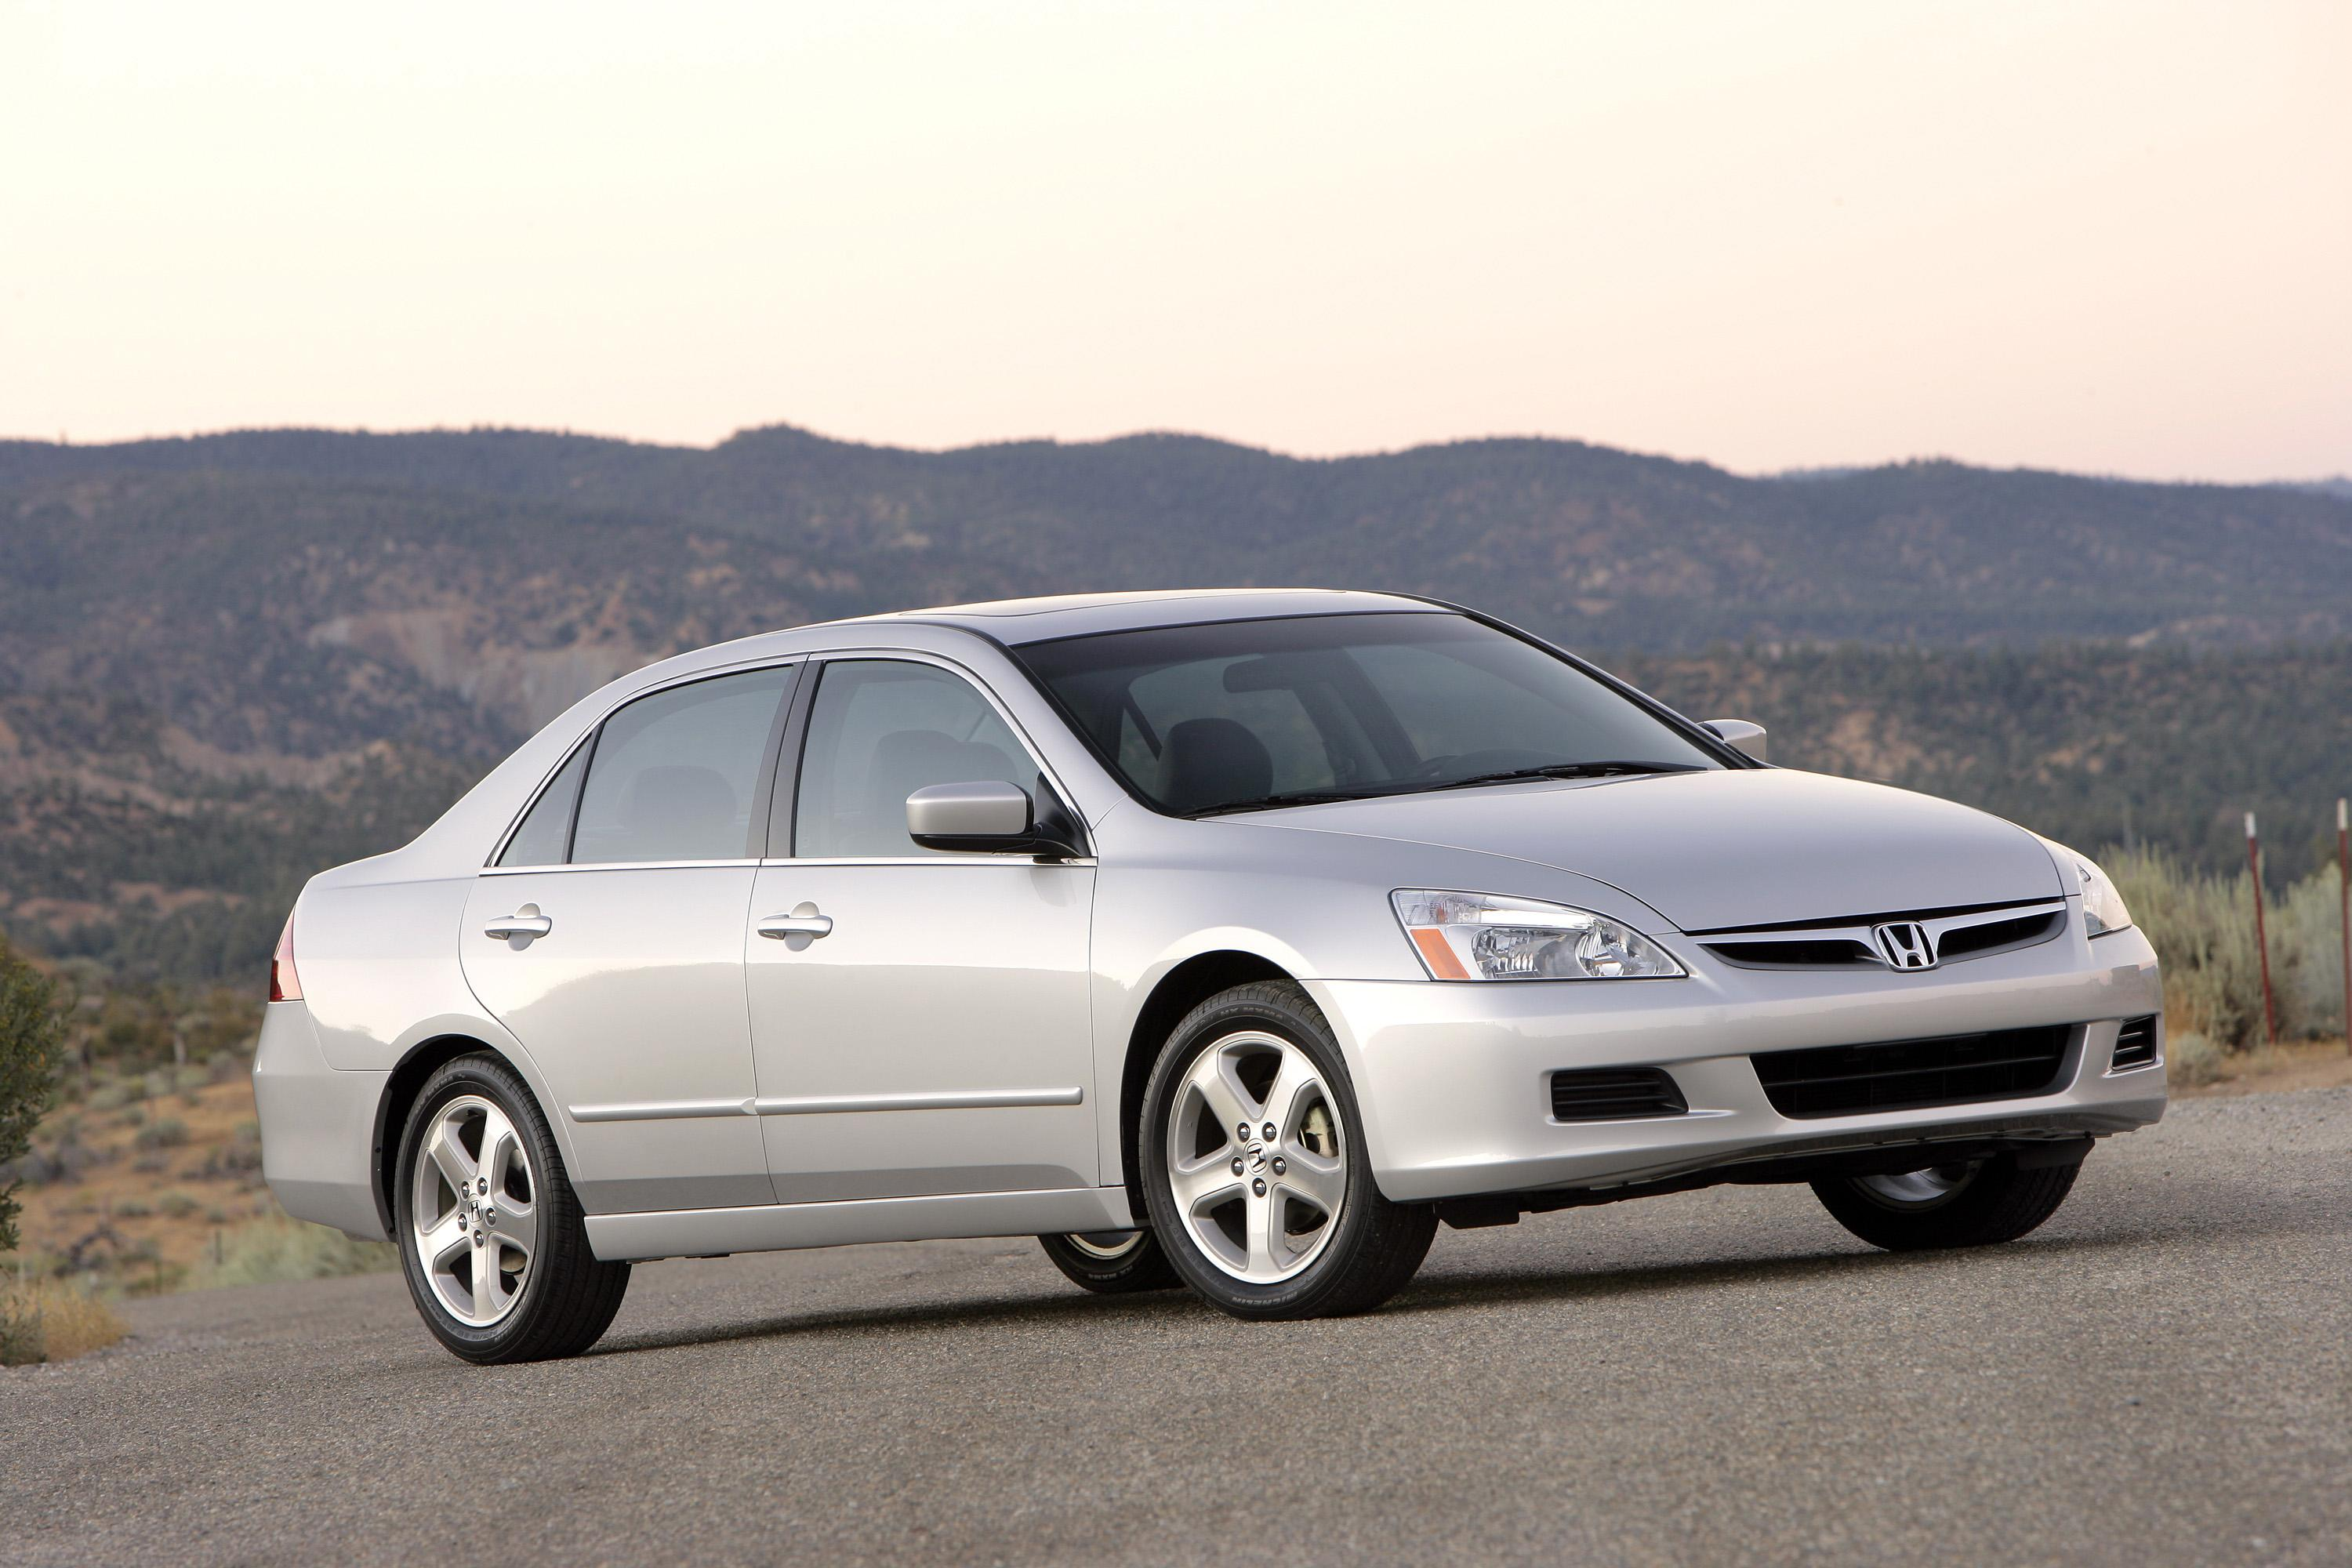 2007 honda accord review top speed. Black Bedroom Furniture Sets. Home Design Ideas